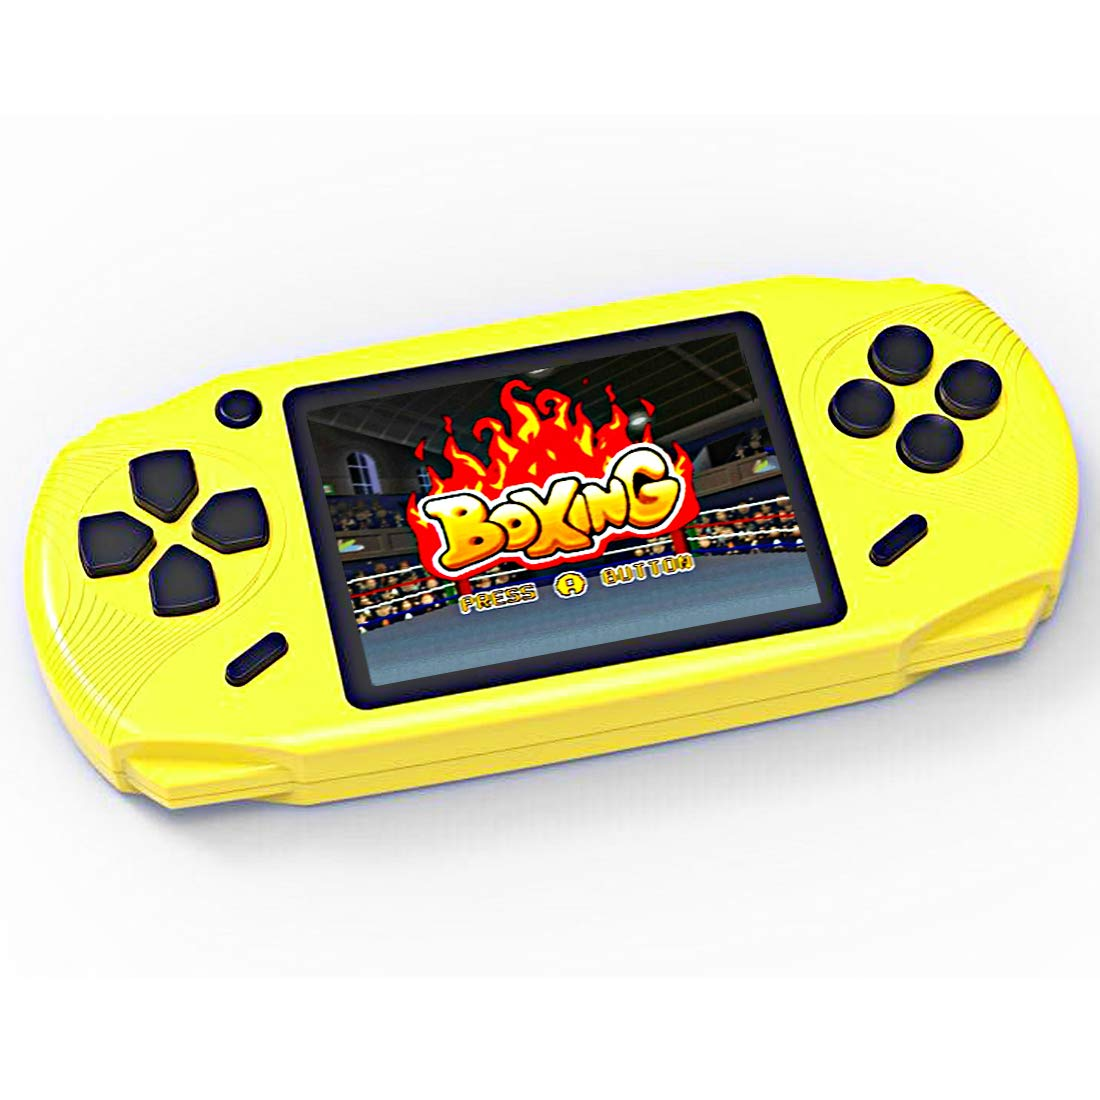 TEBIYOU Adults Kids Handheld Game Console, Portable Retro Game Player Built in 16 Bit 100 HD Classic Electronic Video Games 3.0'' Large Screen USB Rechargeable Handheld Game for Toddlers (Yellow) by TEBIYOU (Image #1)